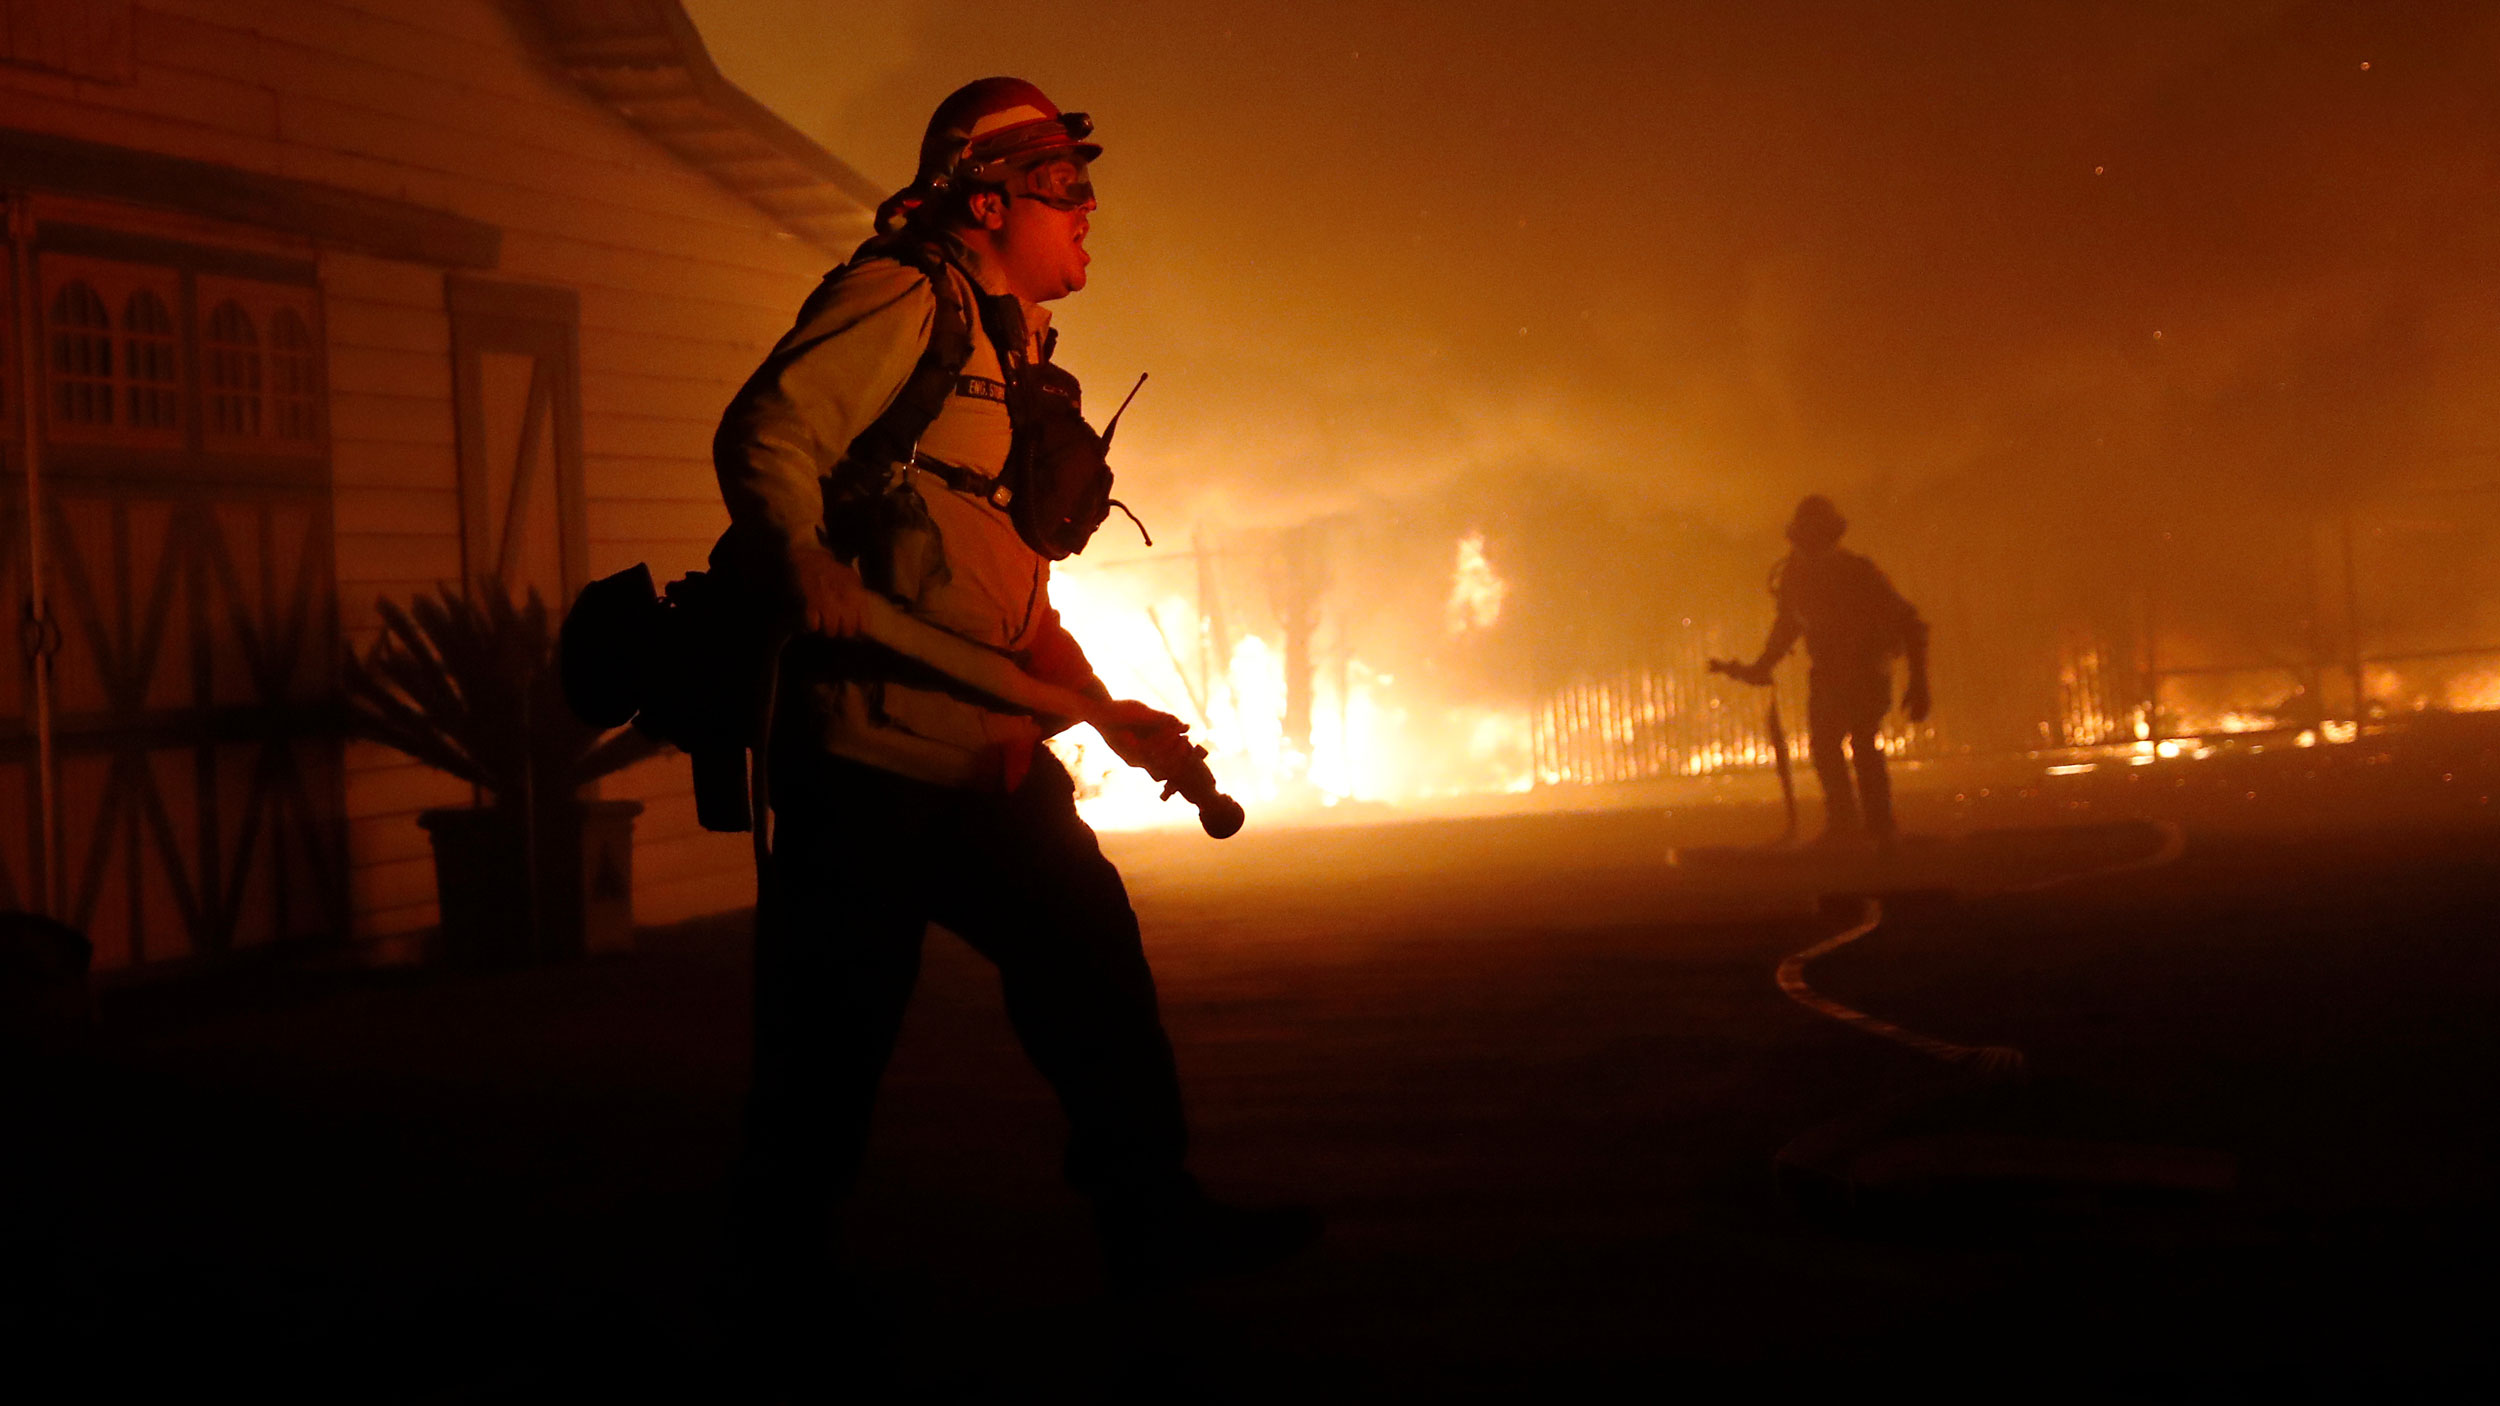 A firefighter is shown in the nearground with a barn and other buildings are on fire in the background.